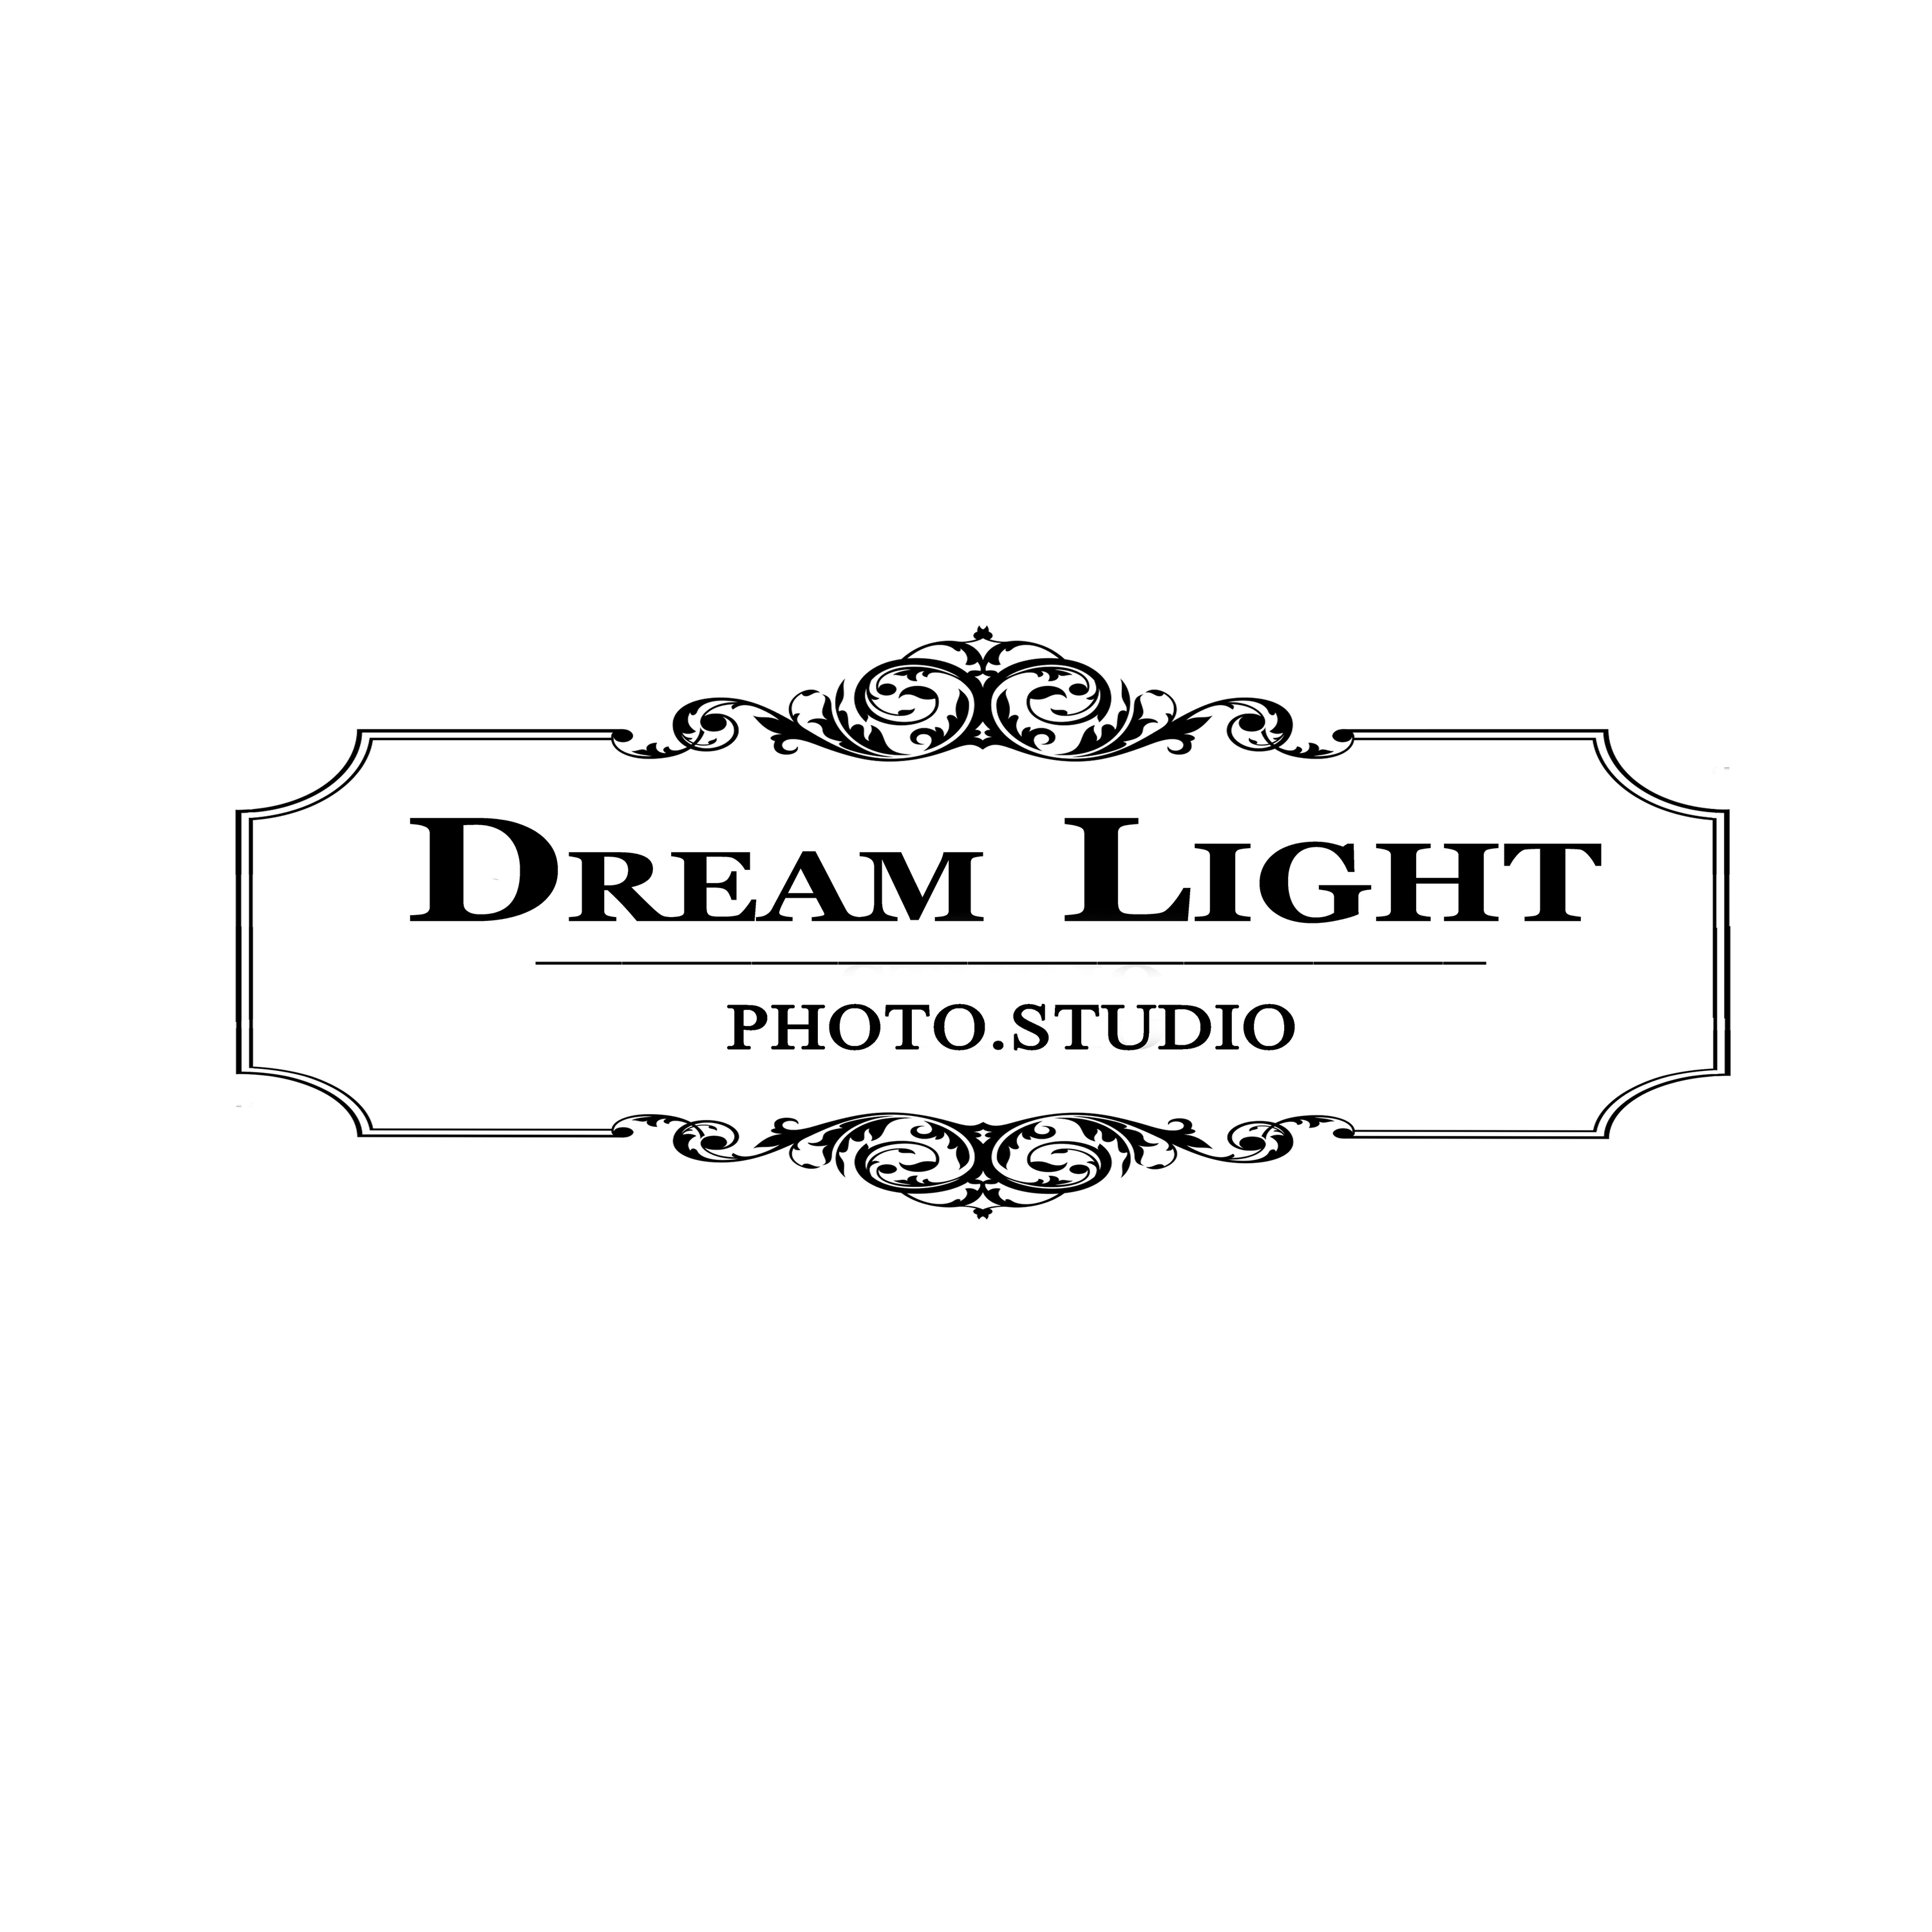 沐光Dream Light 影像工作室